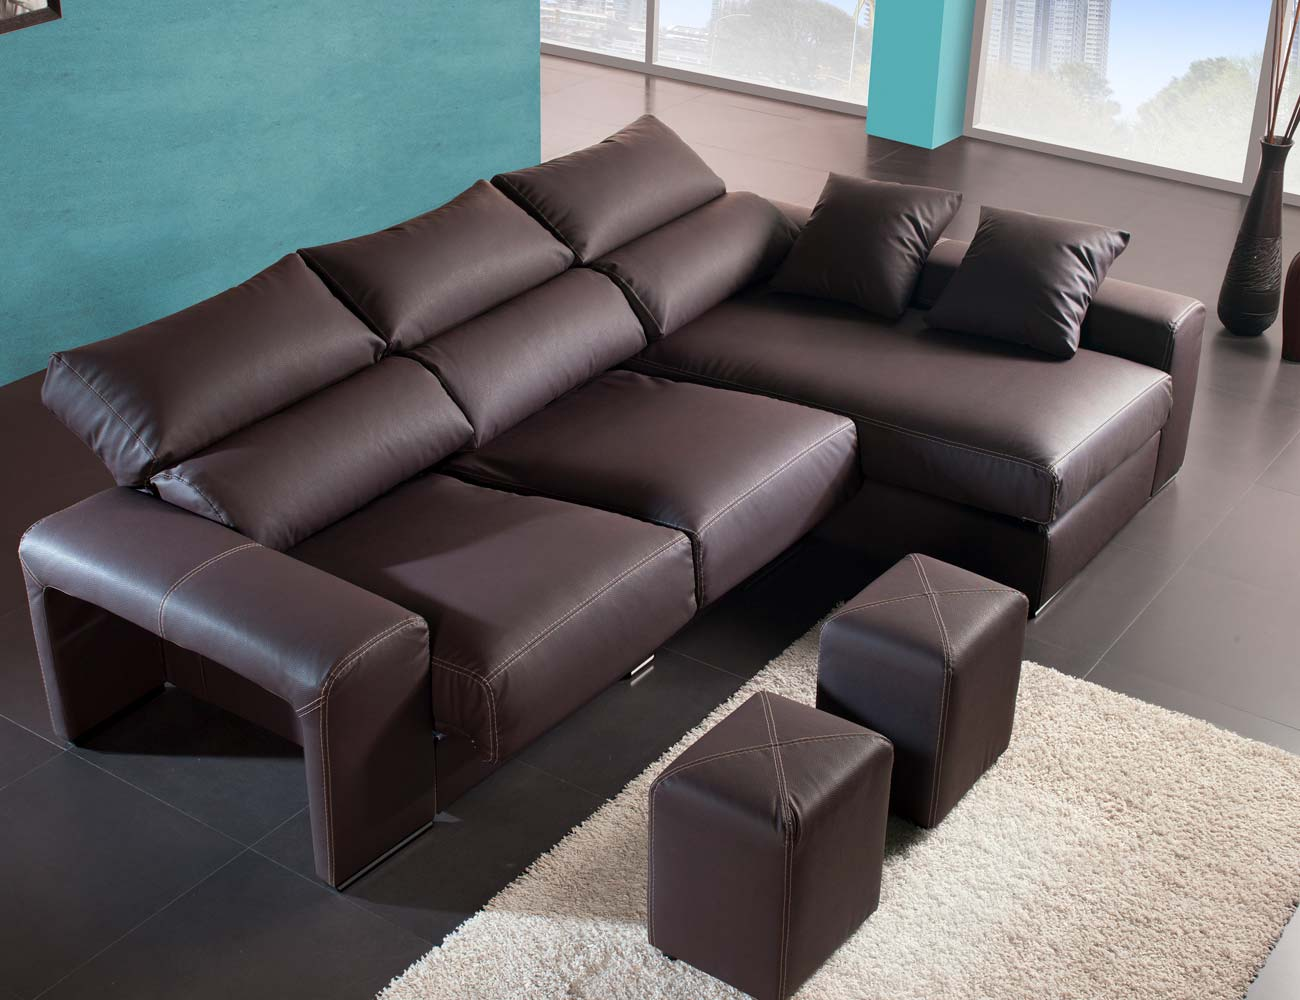 Sofa chaiselongue moderno polipiel chocolate poufs taburetes41